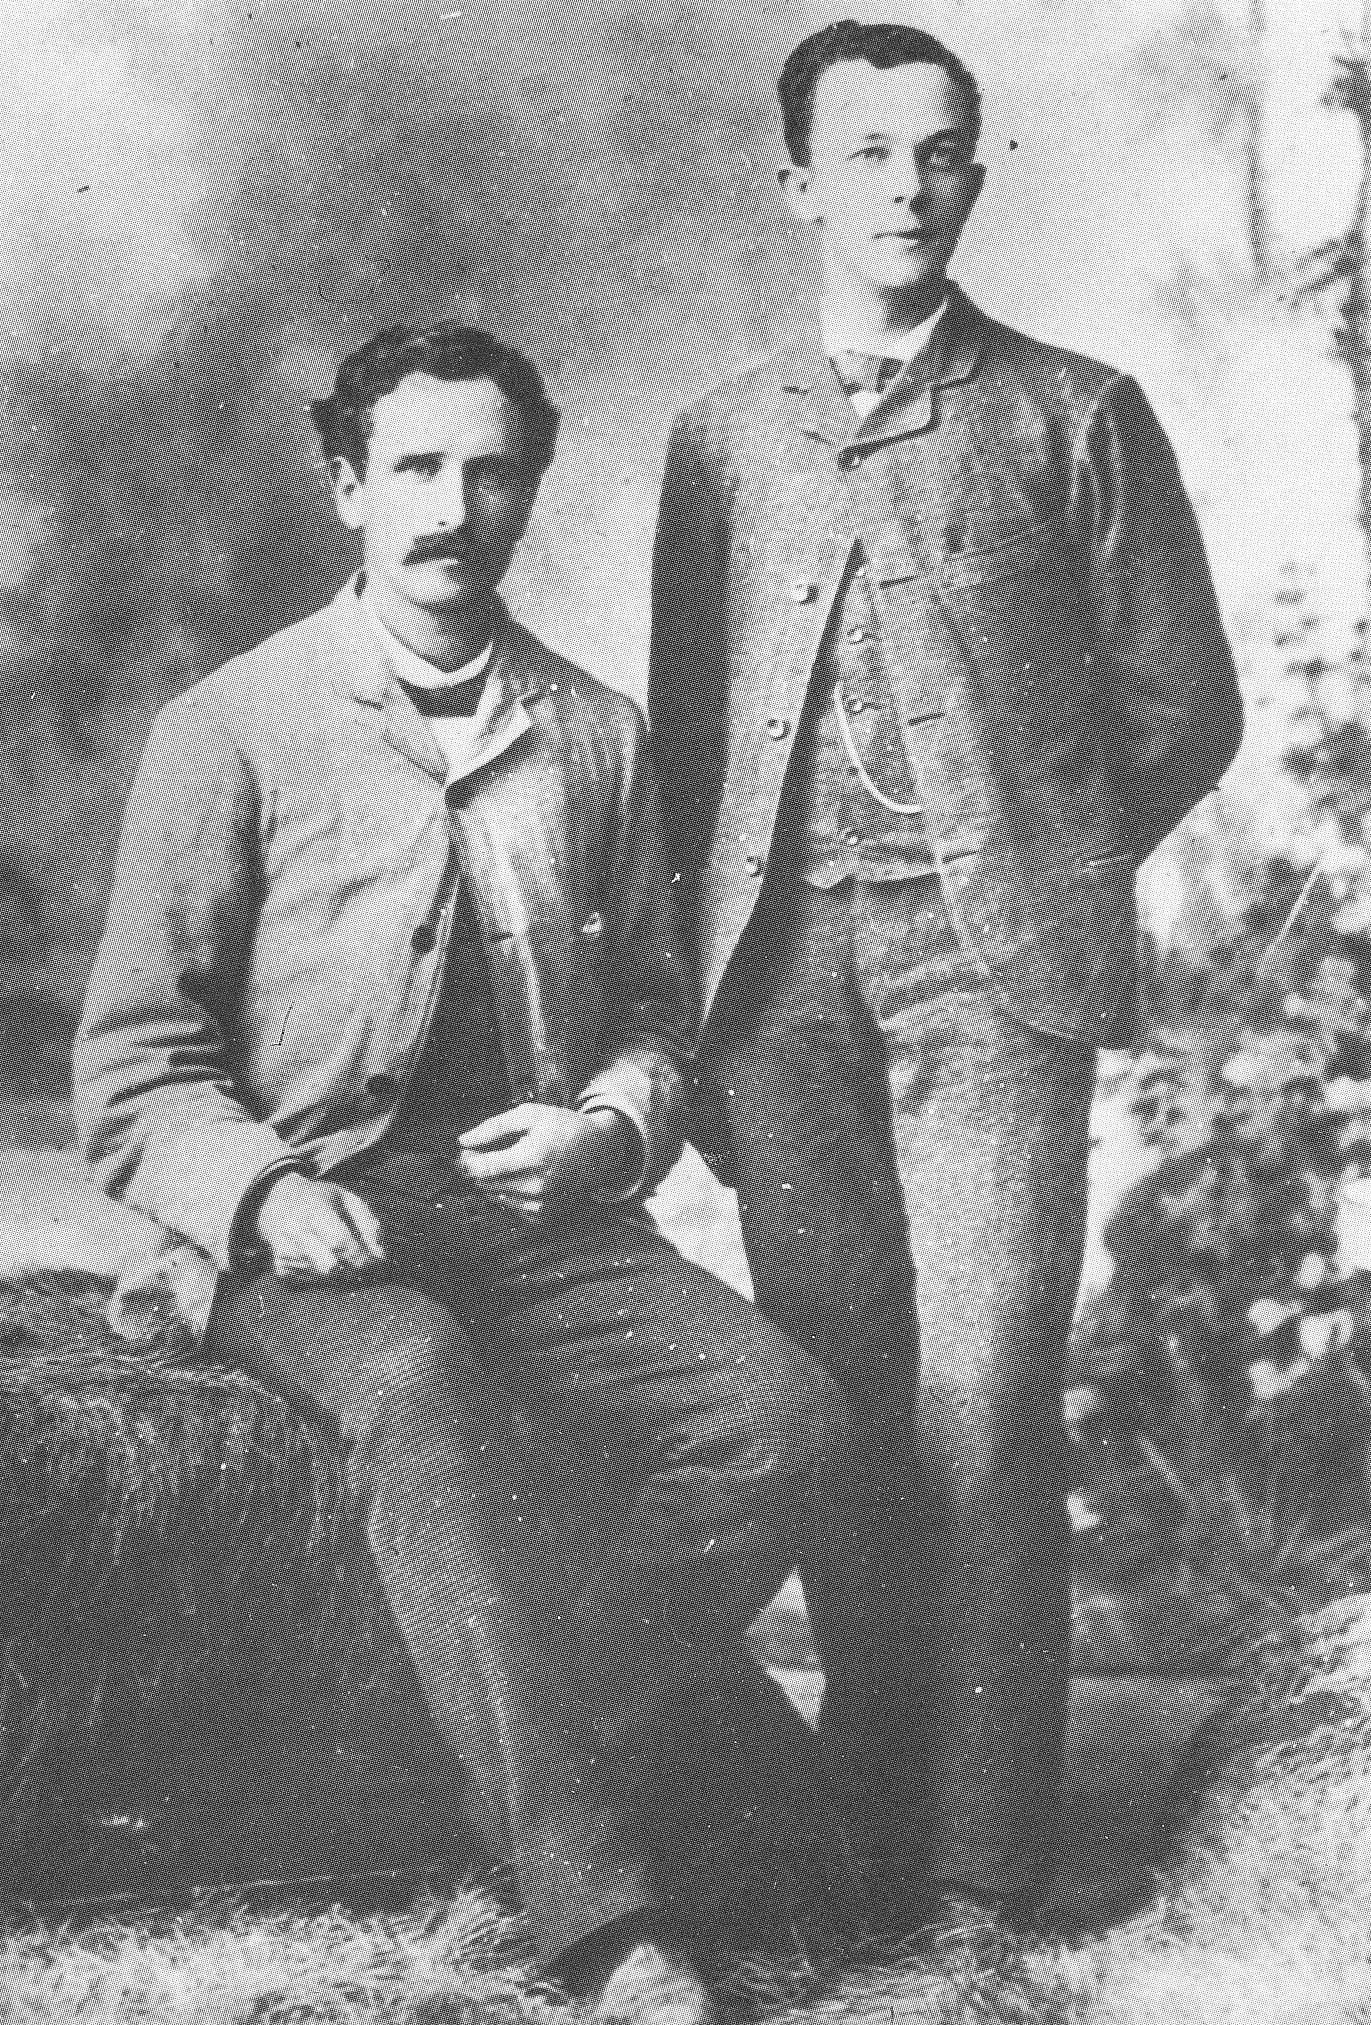 [p.176] 184. George Edward Anderson and John F. Bennett as young men while working as apprentices in C. R. Savage's Pioneer Art Bazar.